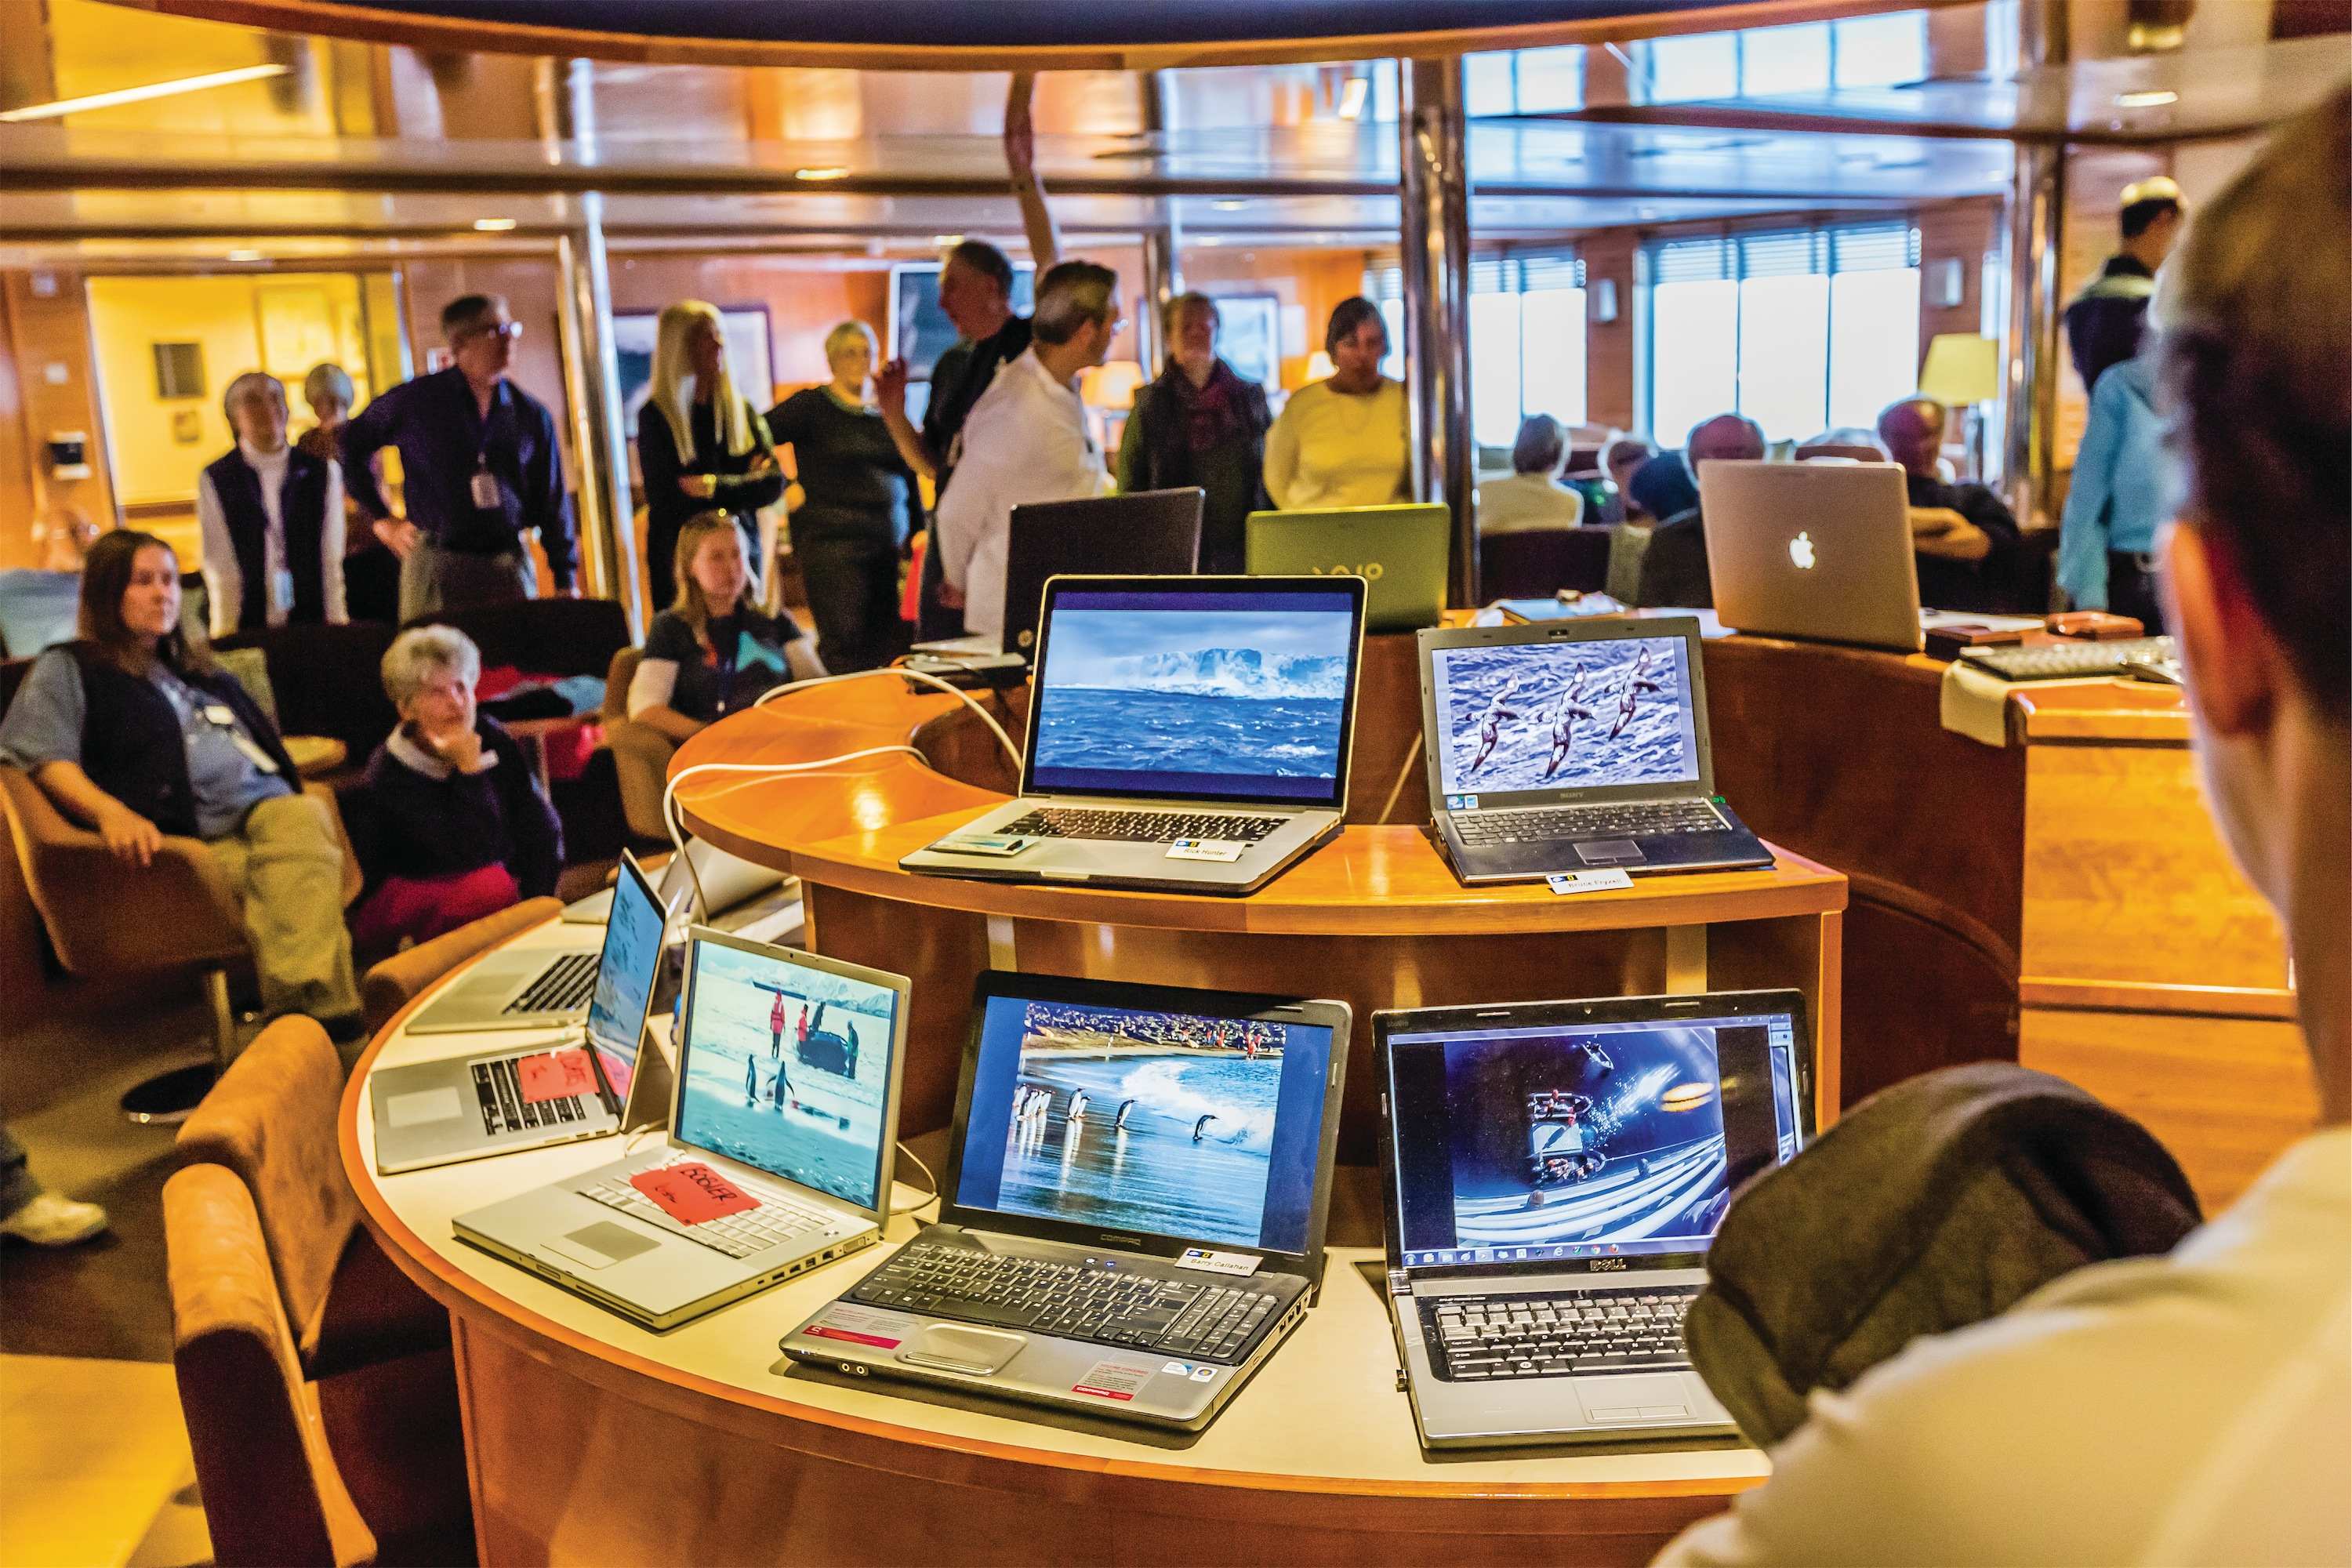 Lindblad Expeditions National Geographic Explorer Interior Lounge Laptop Gallery.jpg